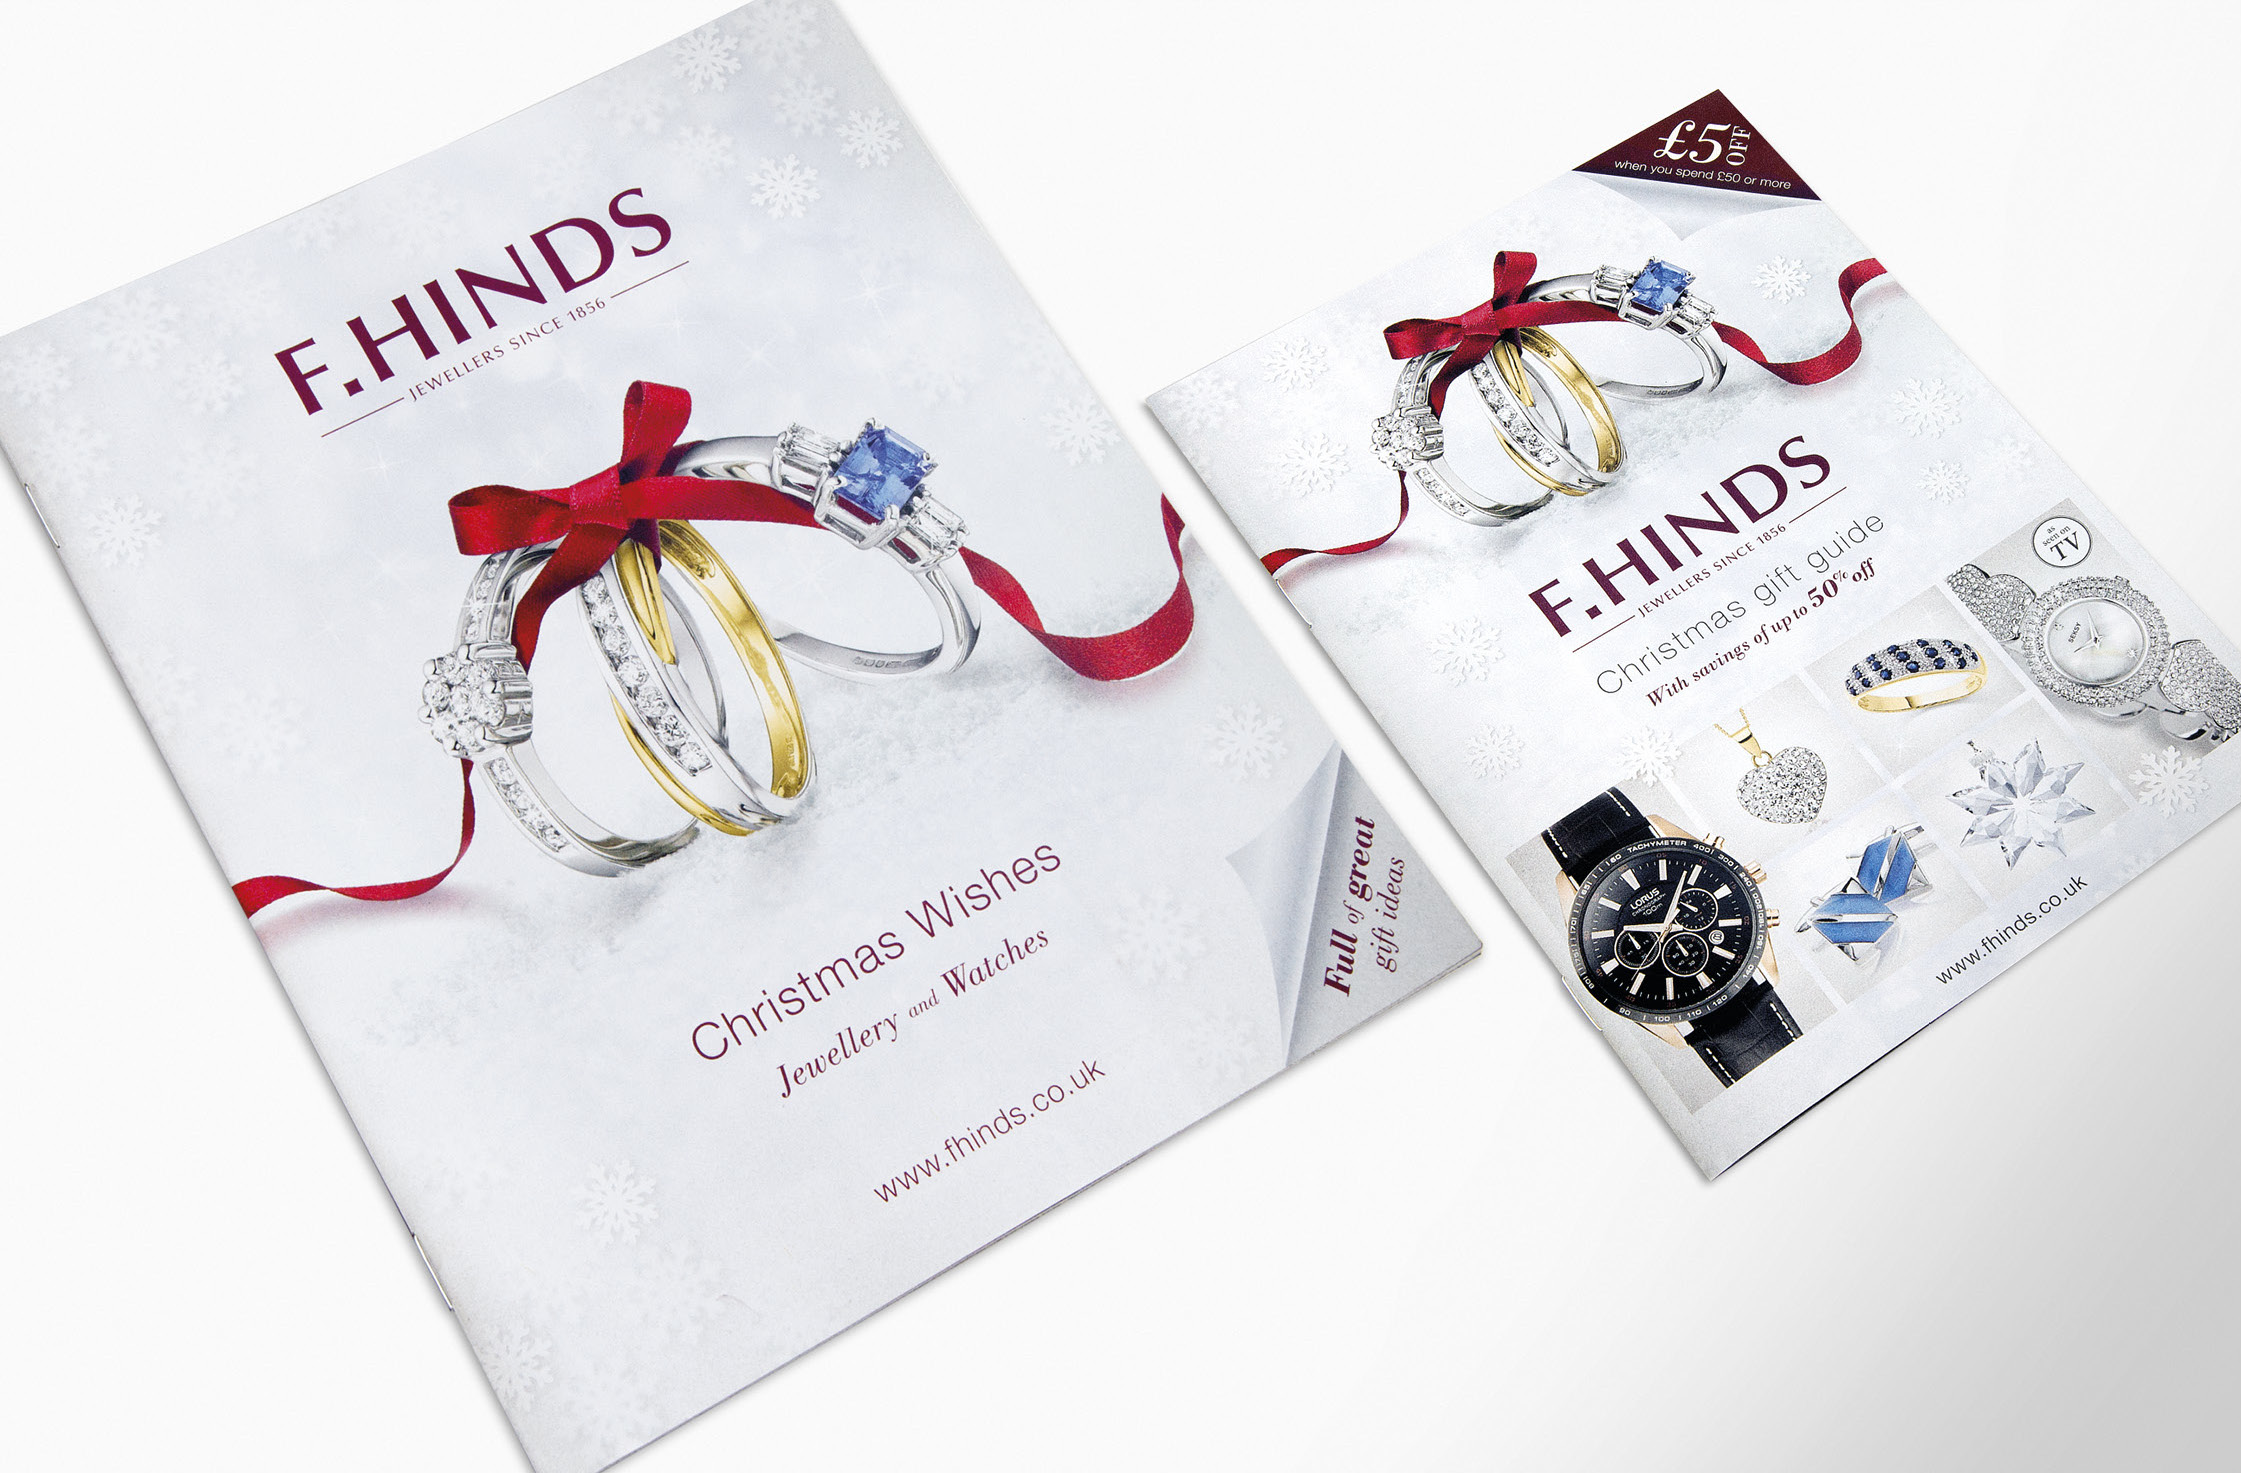 F.Hinds Christmas 2013 brochure and A5 insert - mark-making*